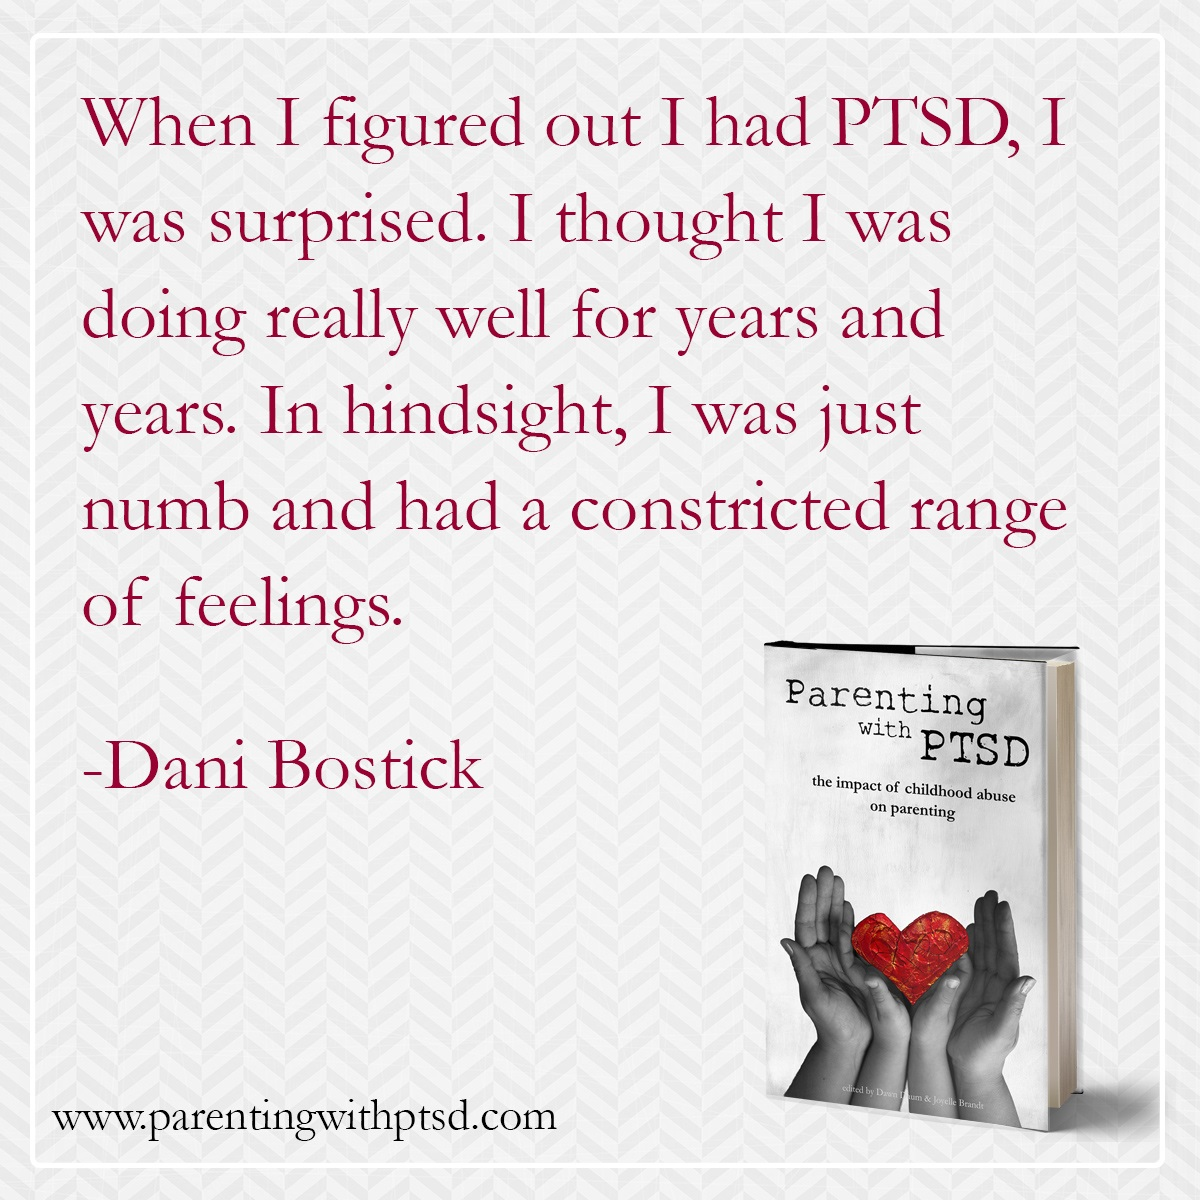 - The demands of parenting can uncloak a legacy of trauma that survivors may not have been fully aware of or prepared to deal with.